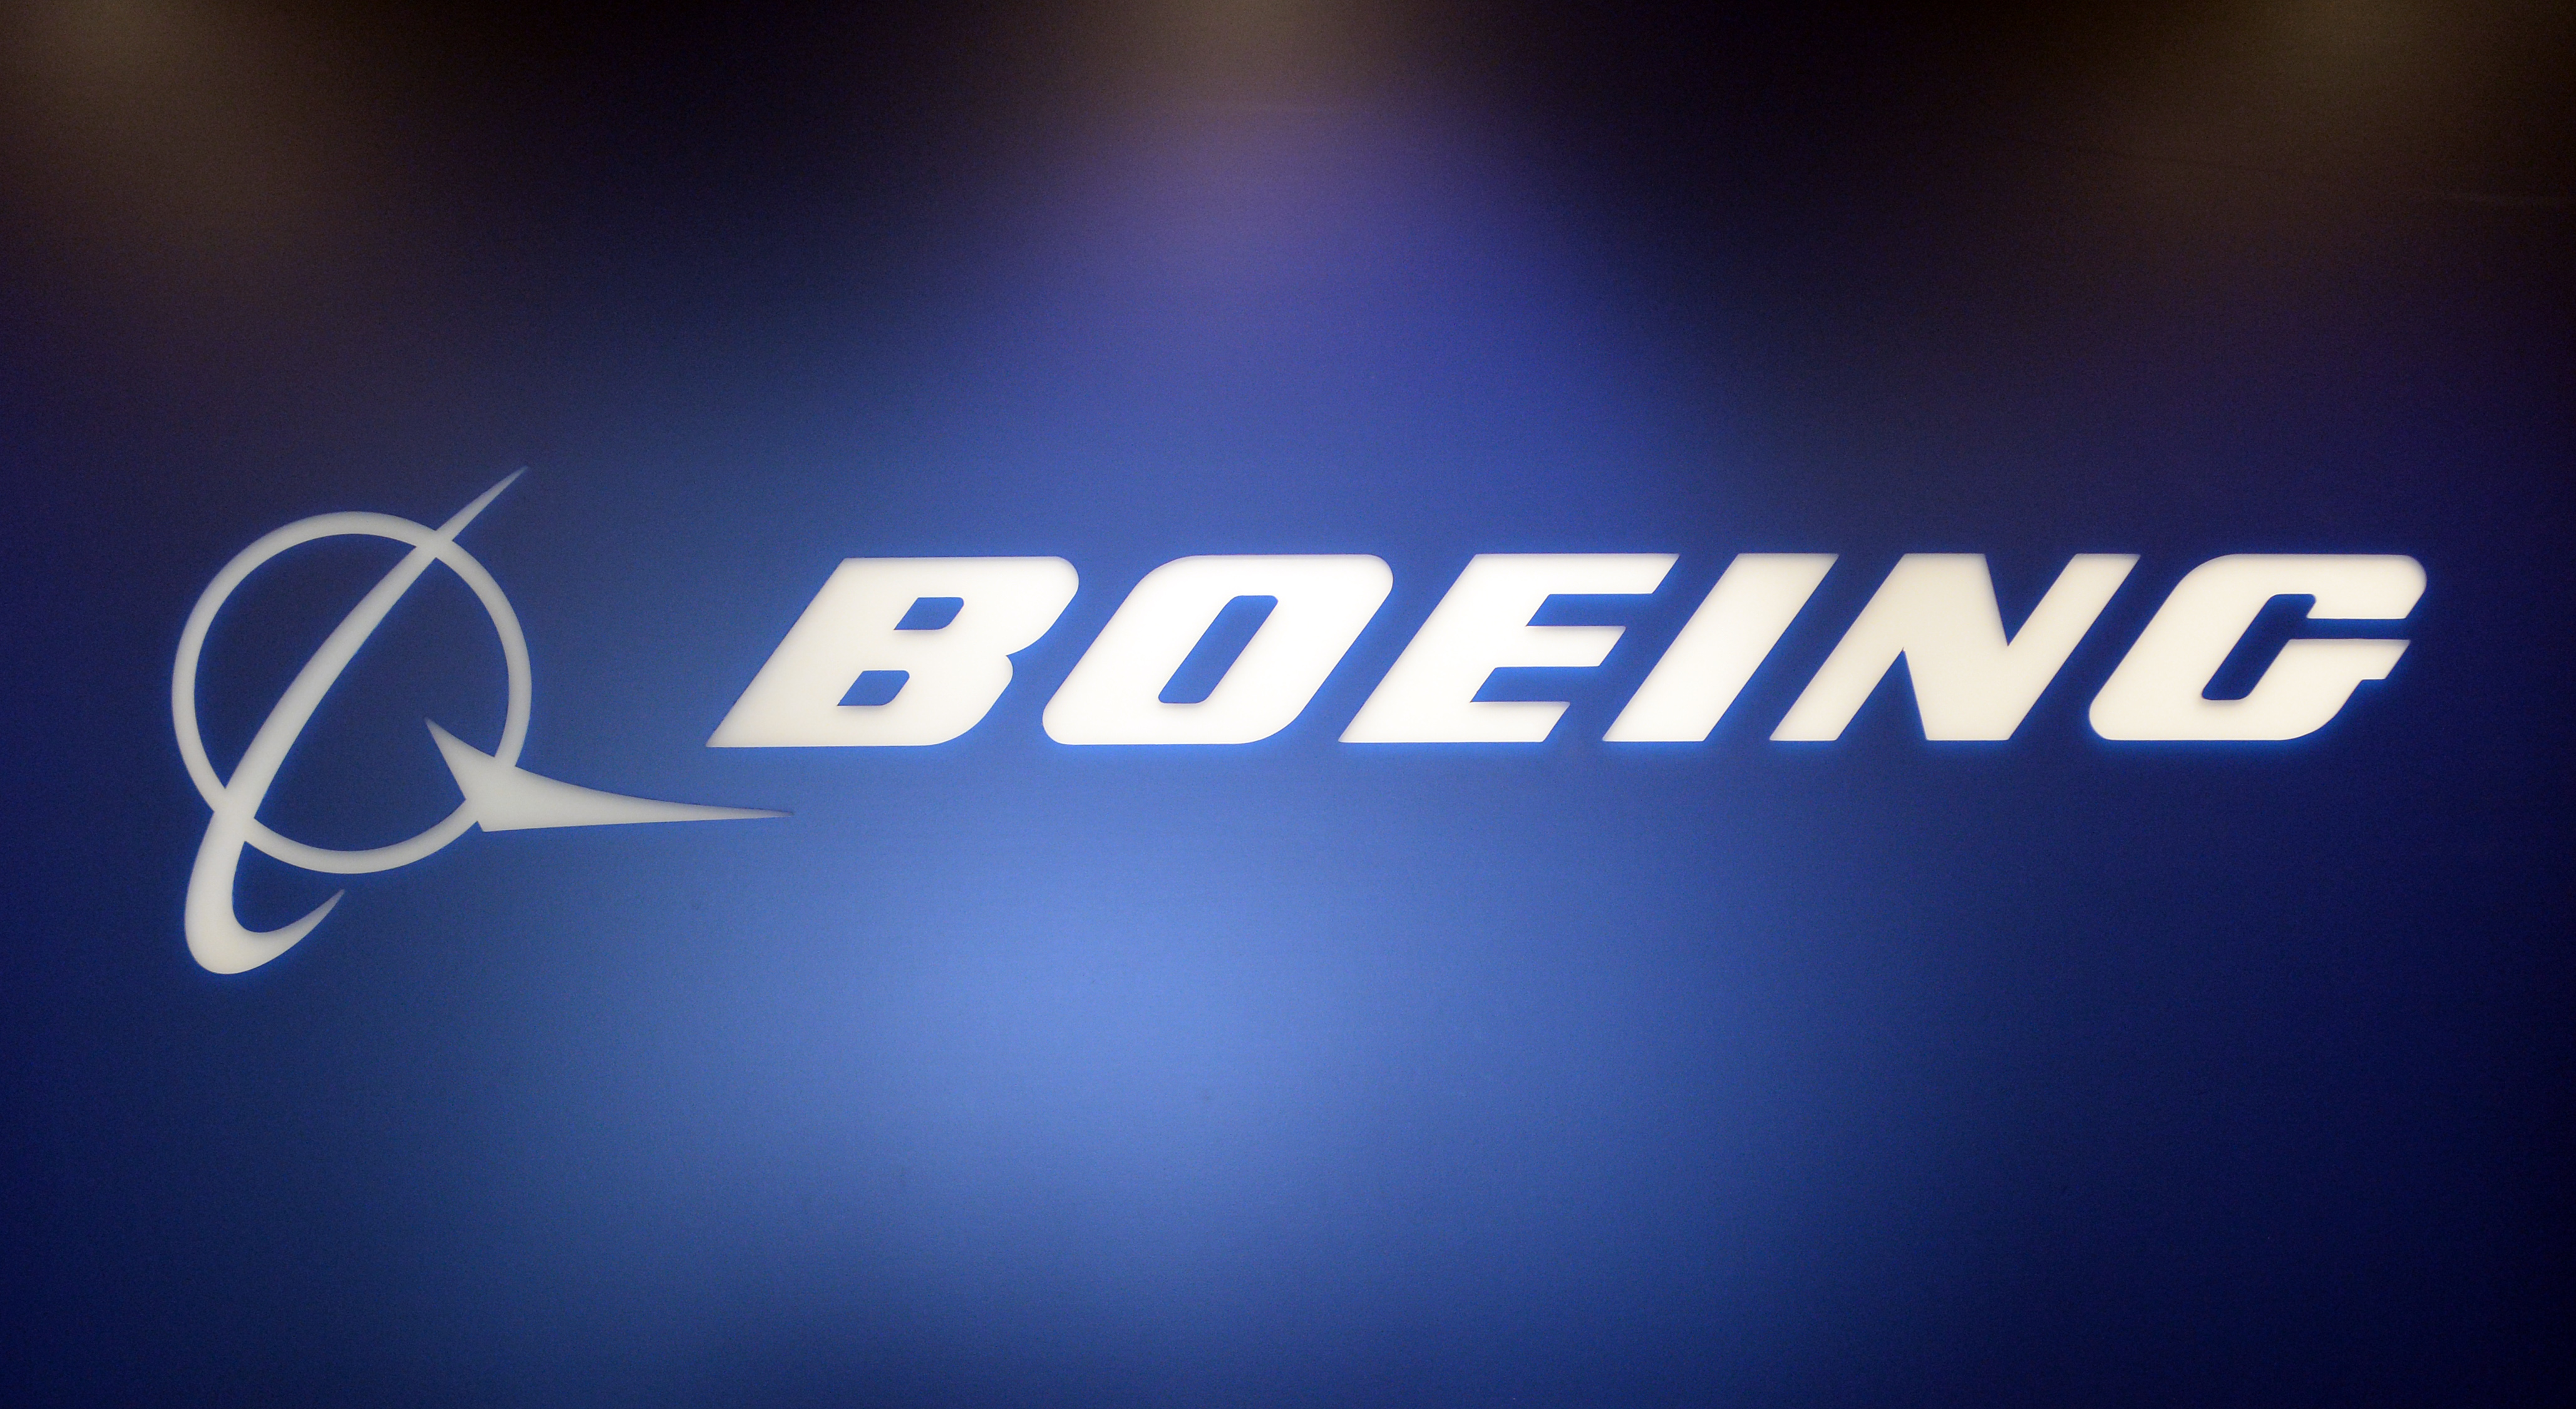 Awesome Boeing Logos 13 In Create Logo Online With Boeing Logos - Boeing Vector, Transparent background PNG HD thumbnail